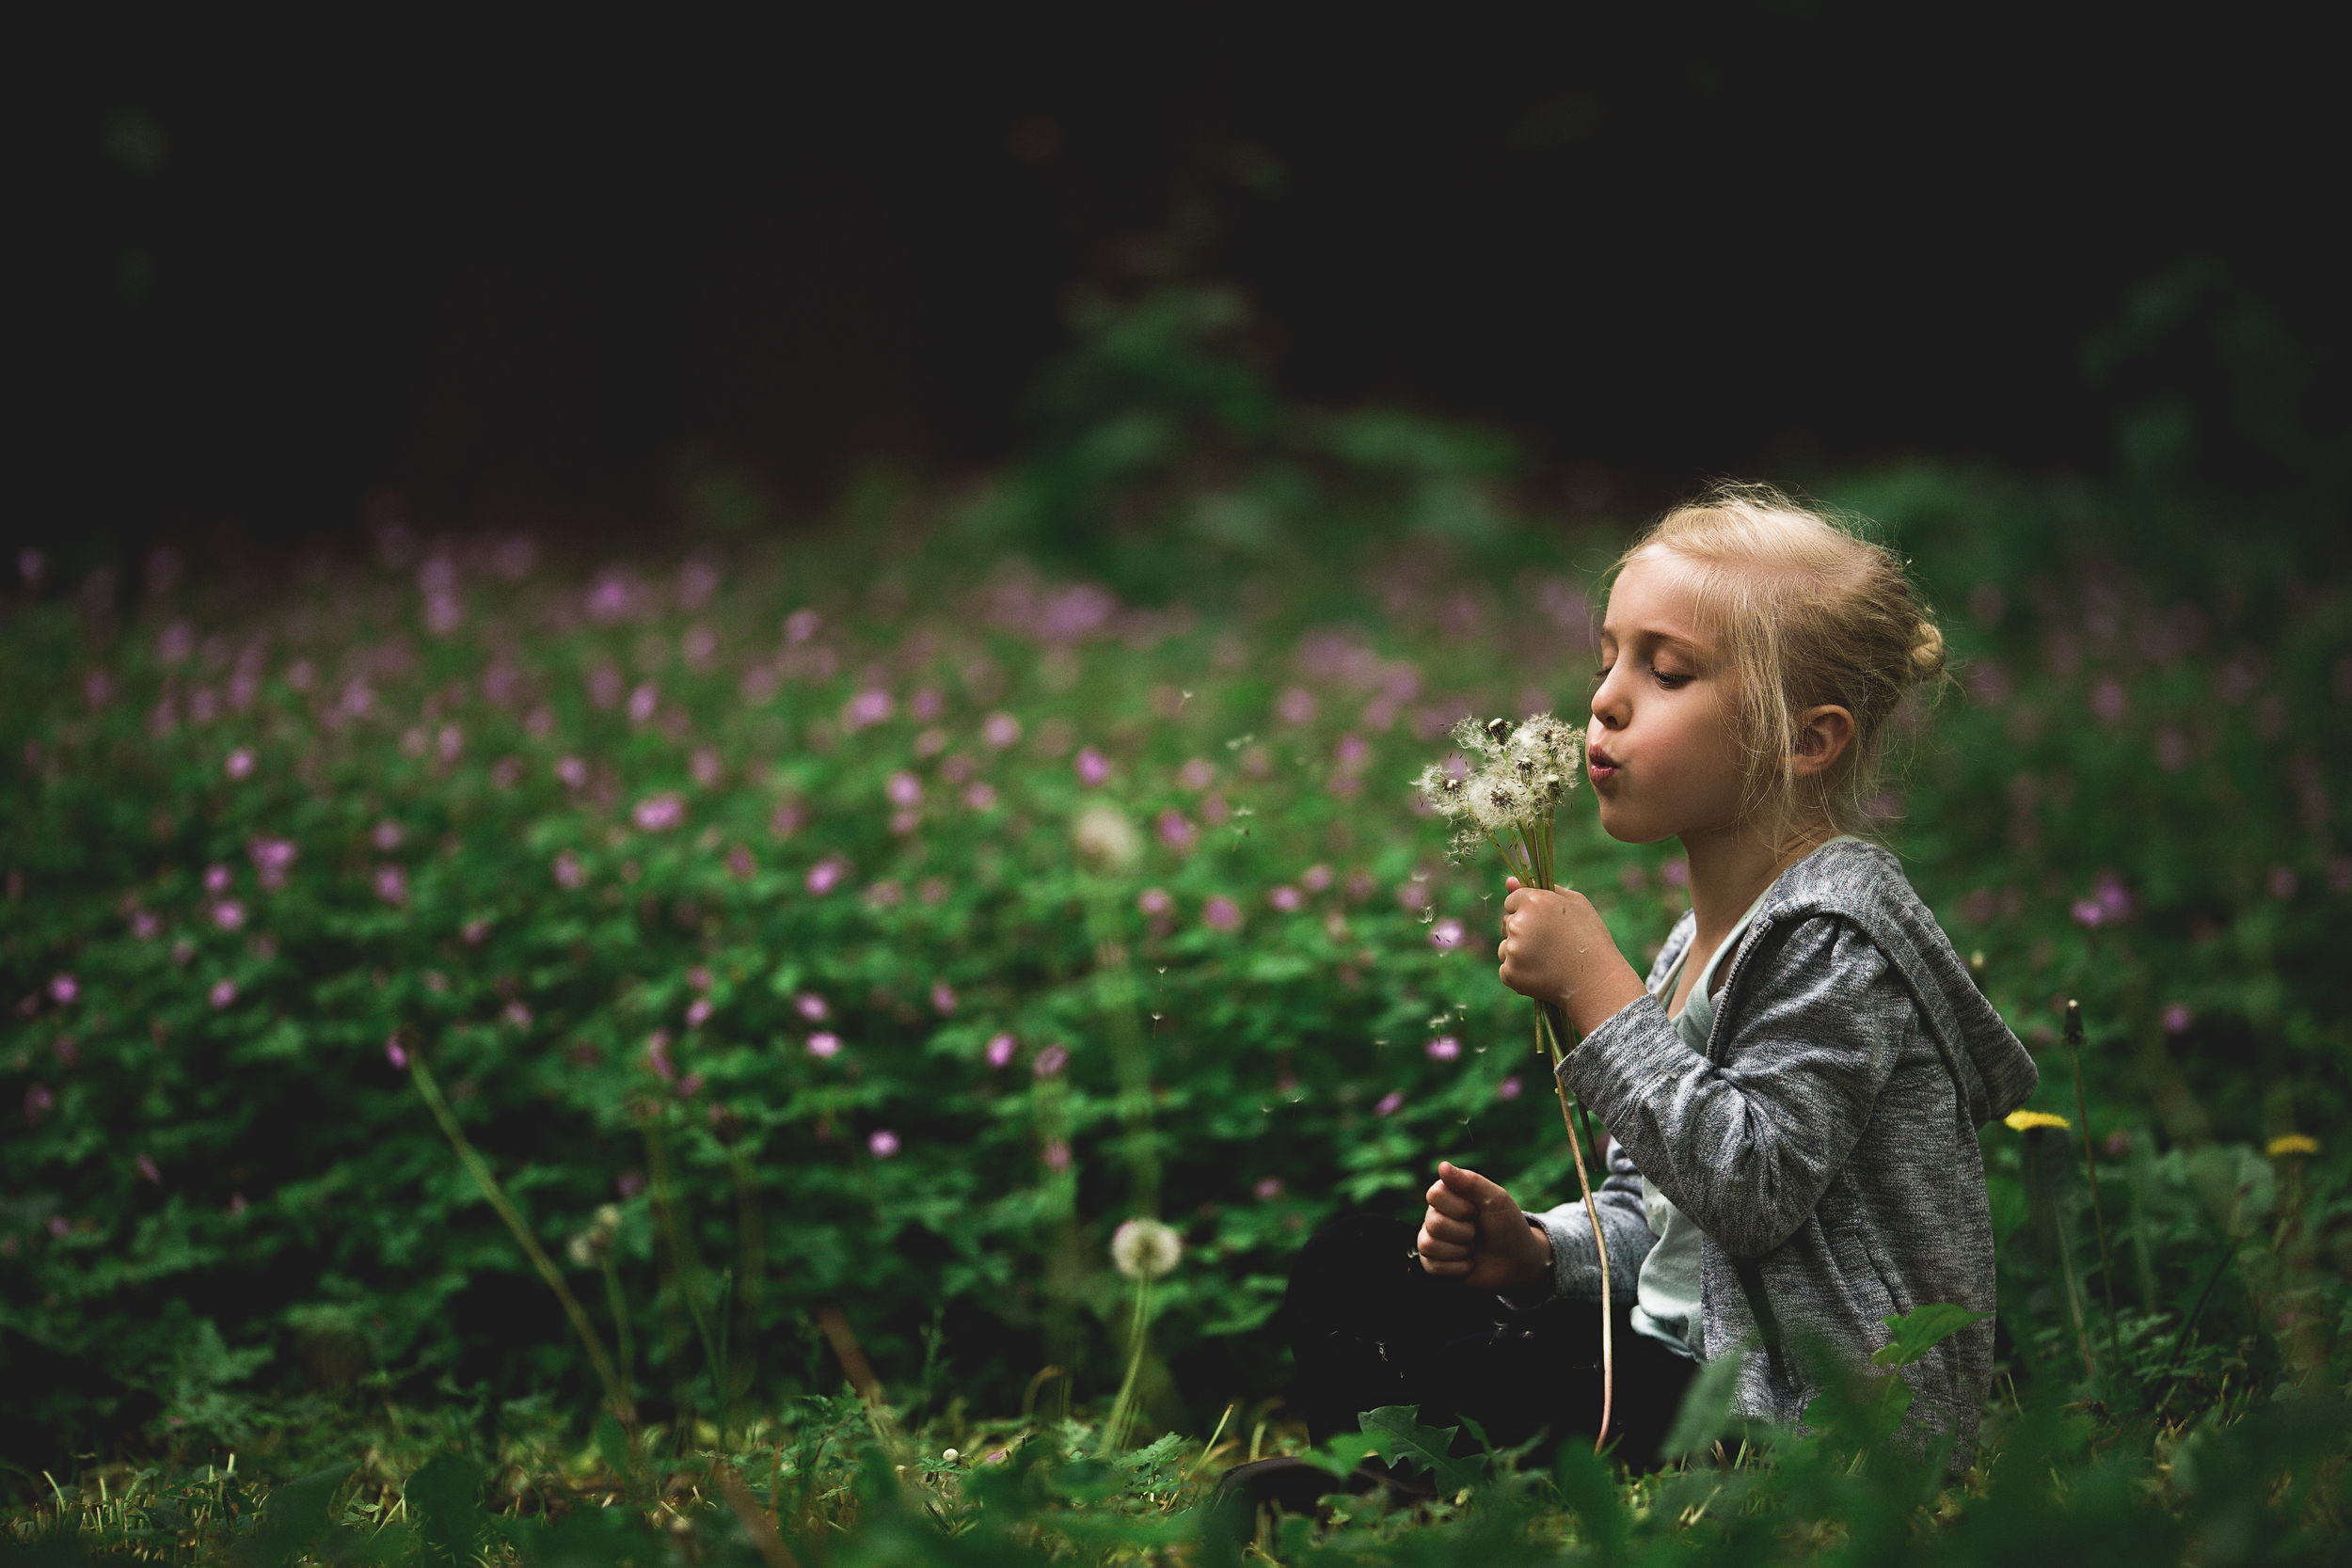 Hello-olivia-photography-long-island-family-children-childrens-lifestyle-photographer-planting-fields-oyster-bay-blowing-flowers